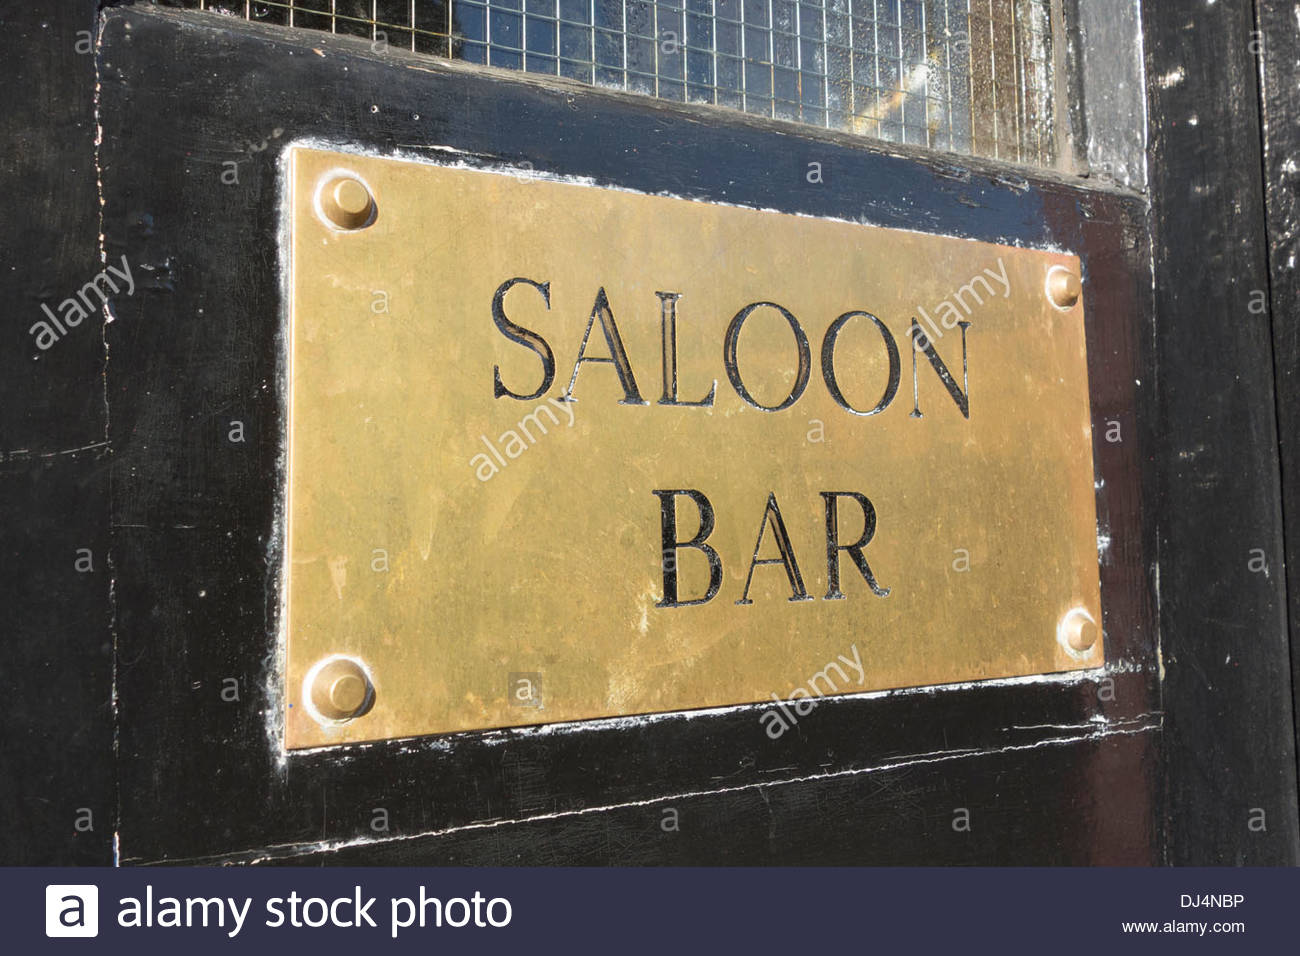 Saloon bar sign on an etched brass plate - Stock Image